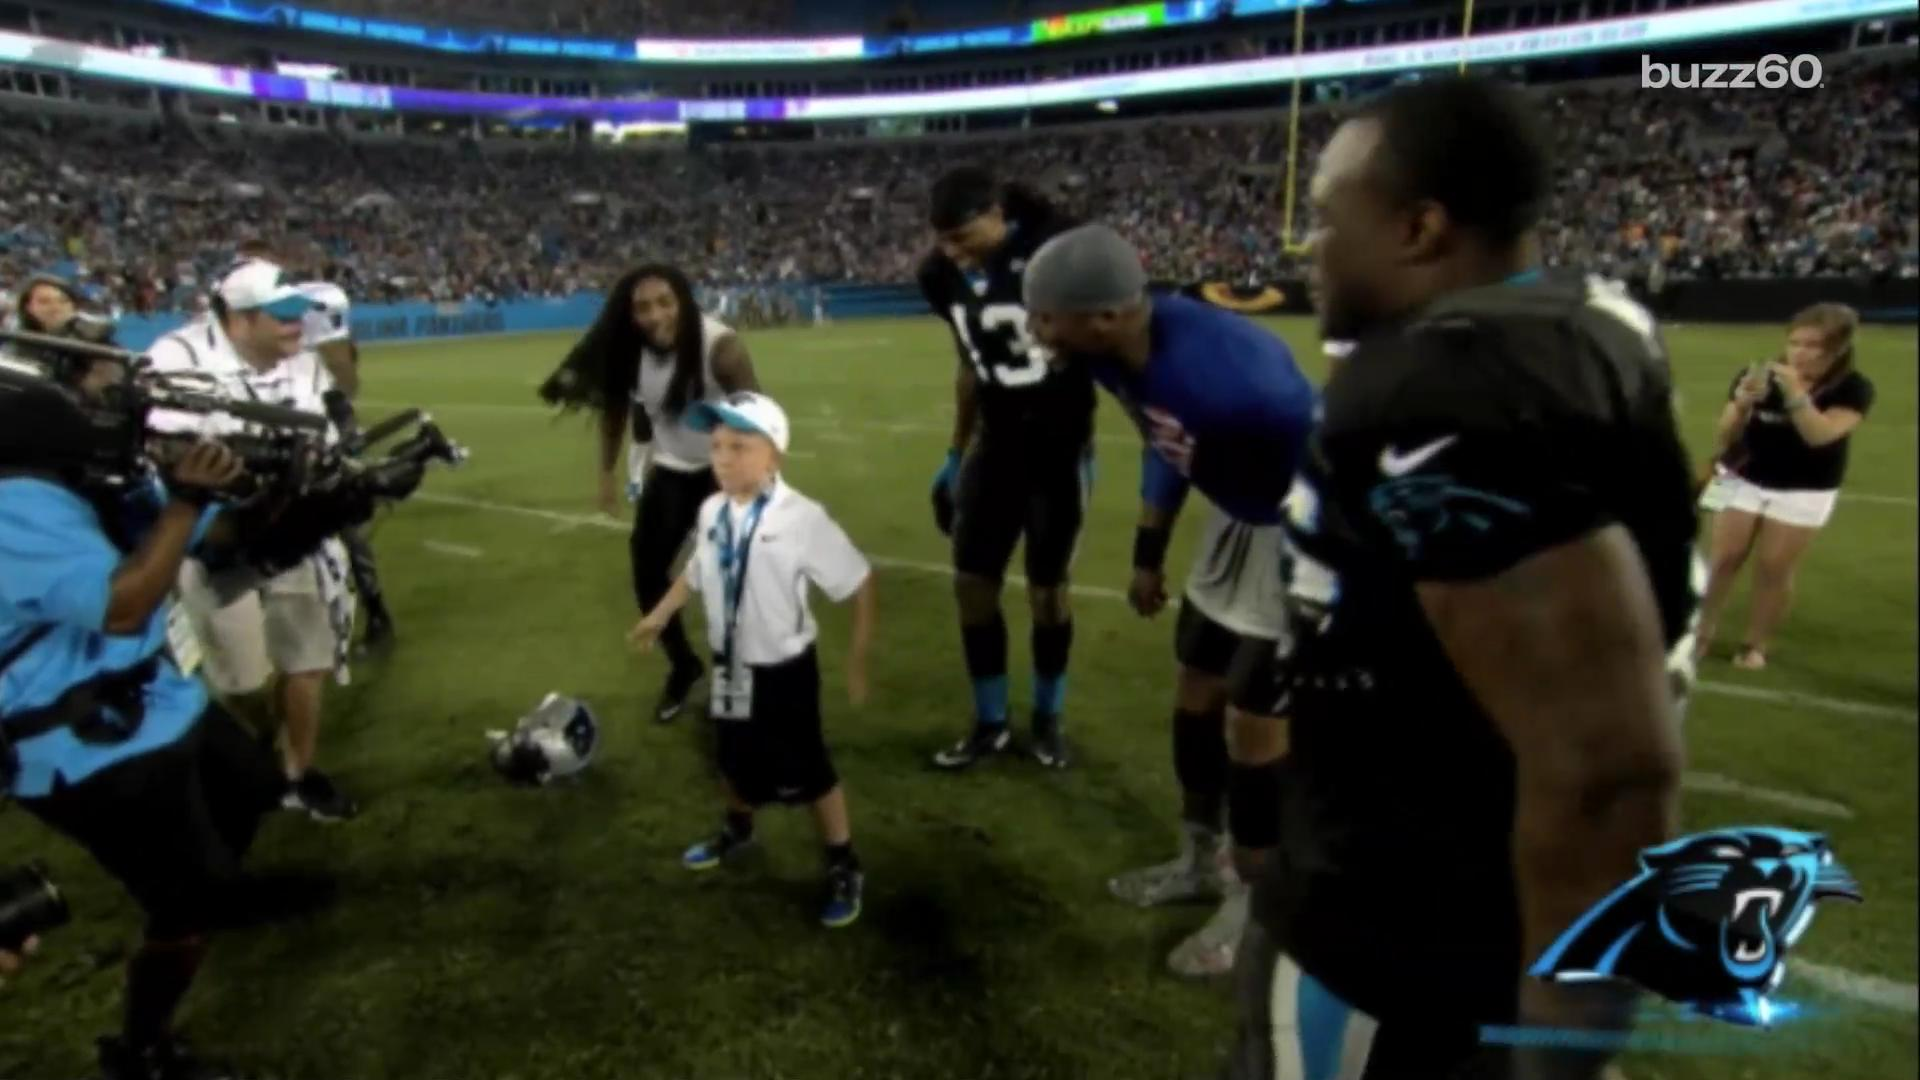 6-year-old beating cancer one dance move at a time